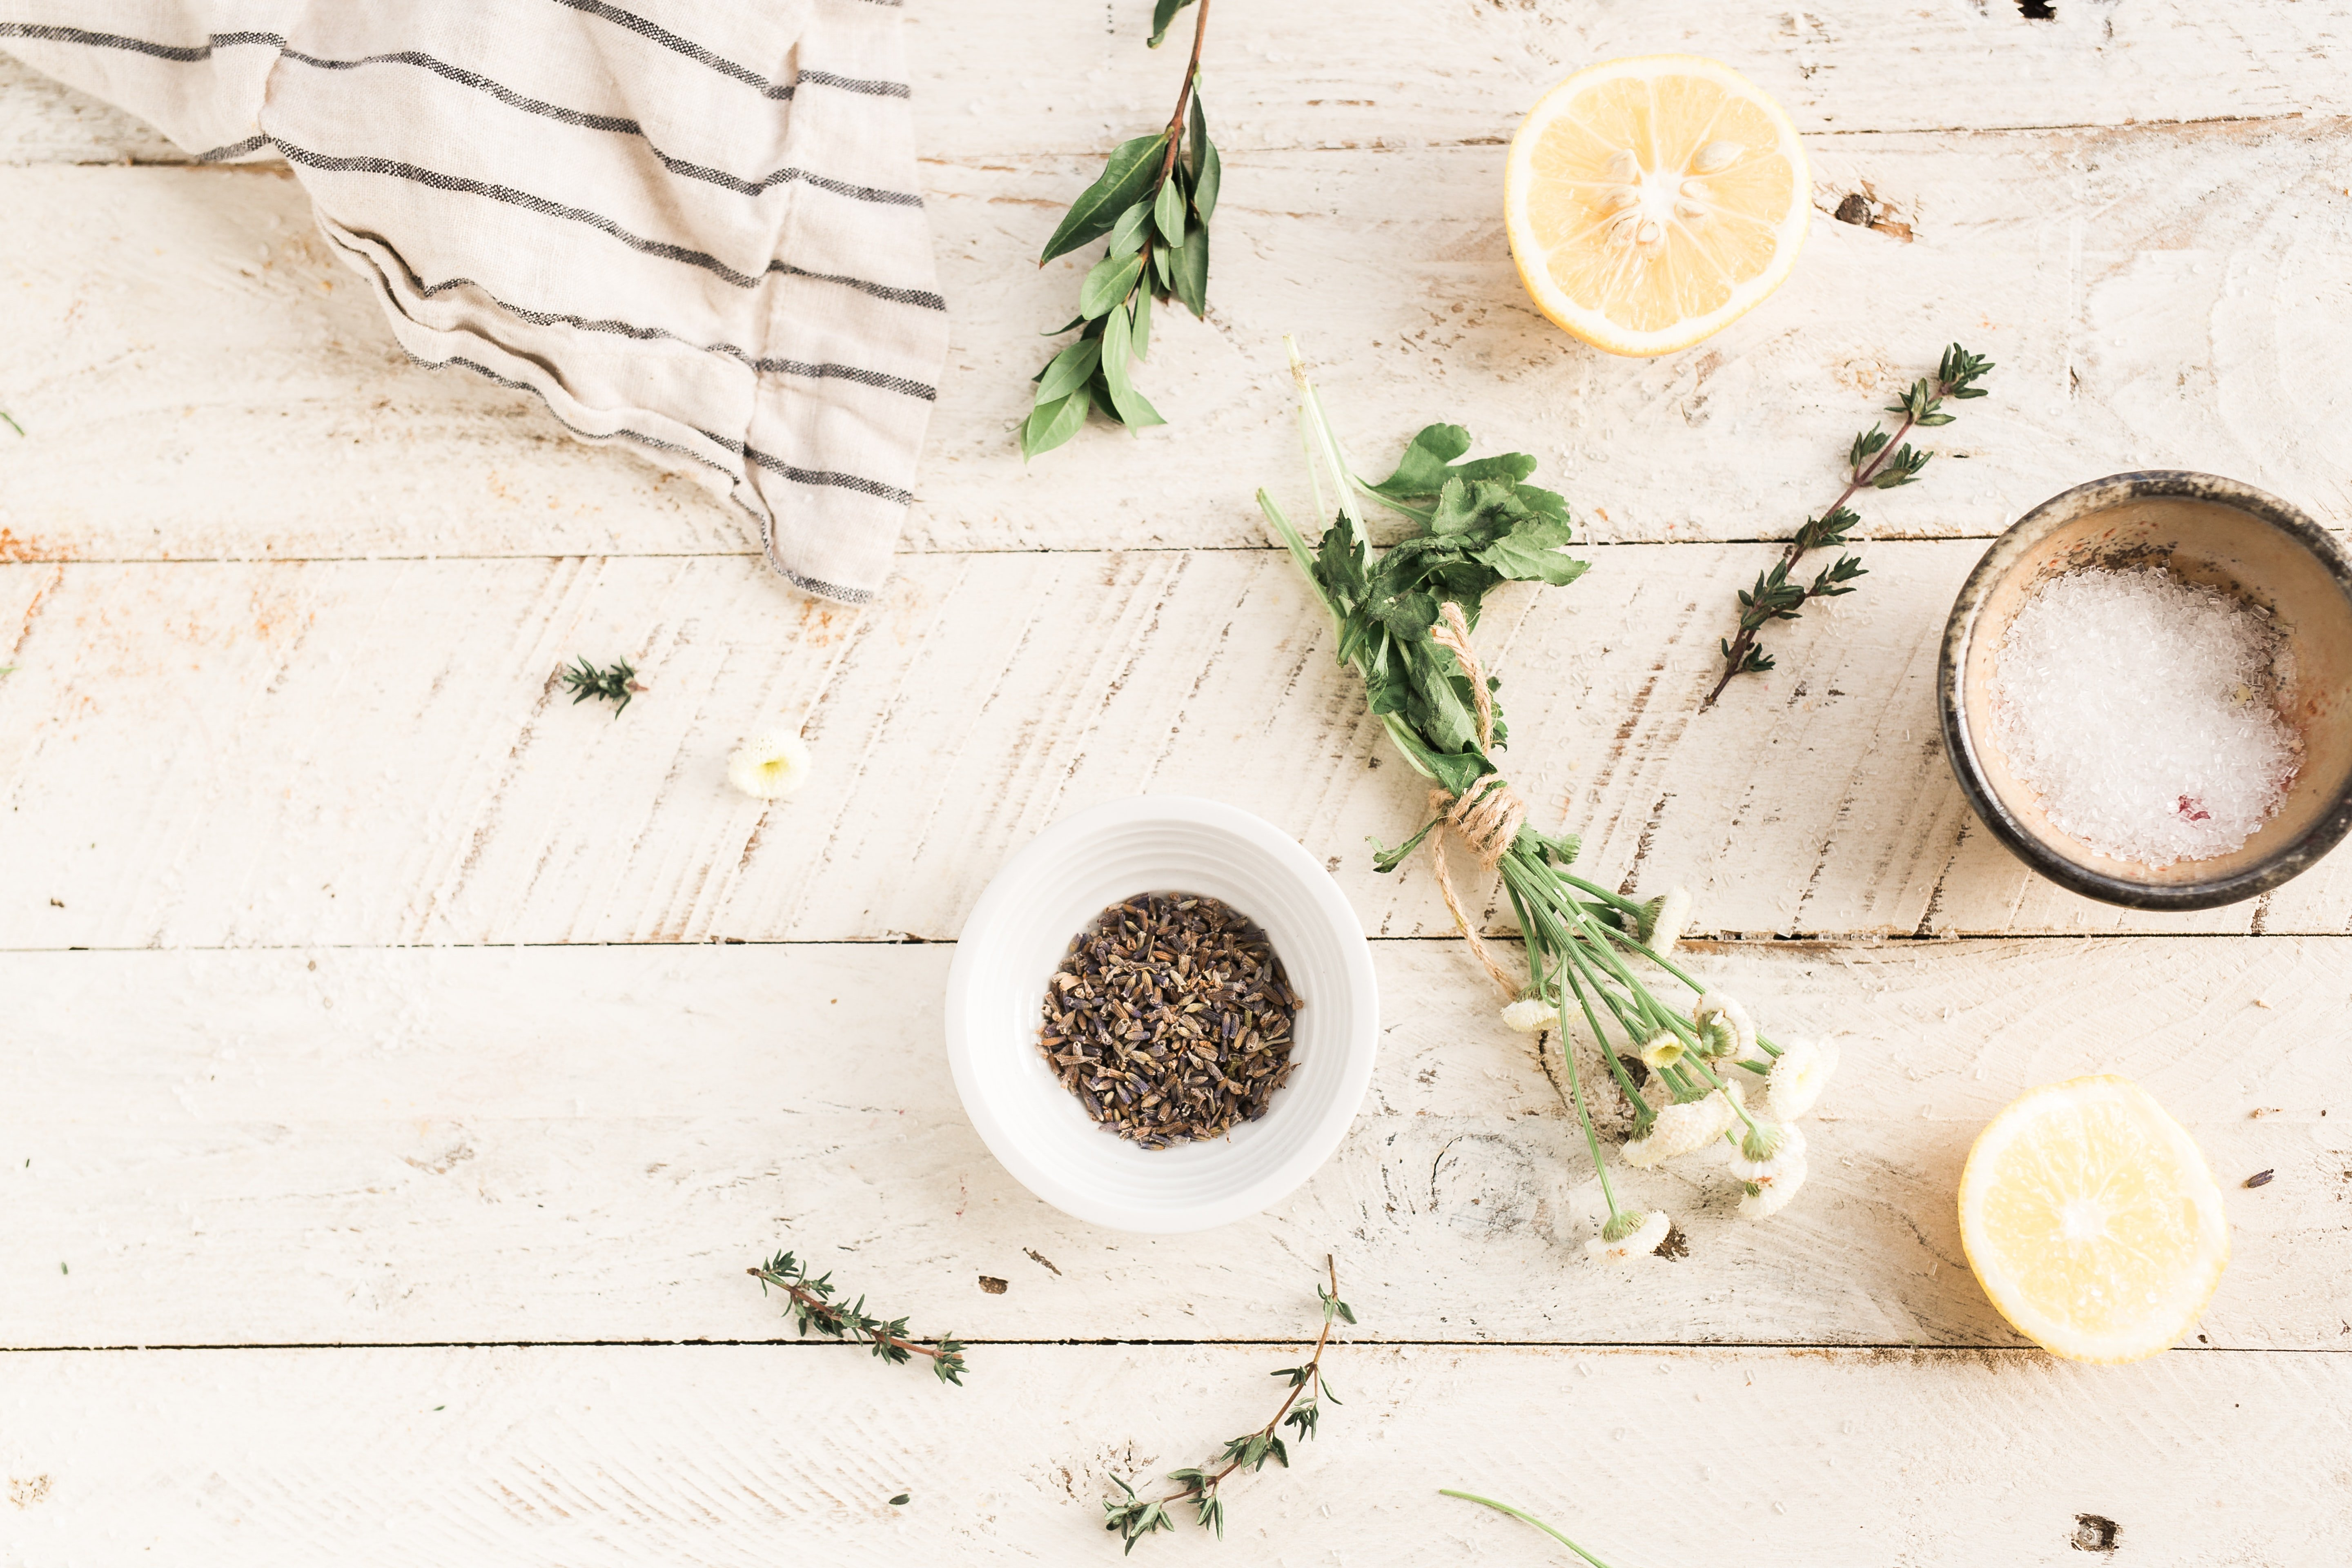 5 Reasons Cleansing and Yoga Go Hand-in-Hand